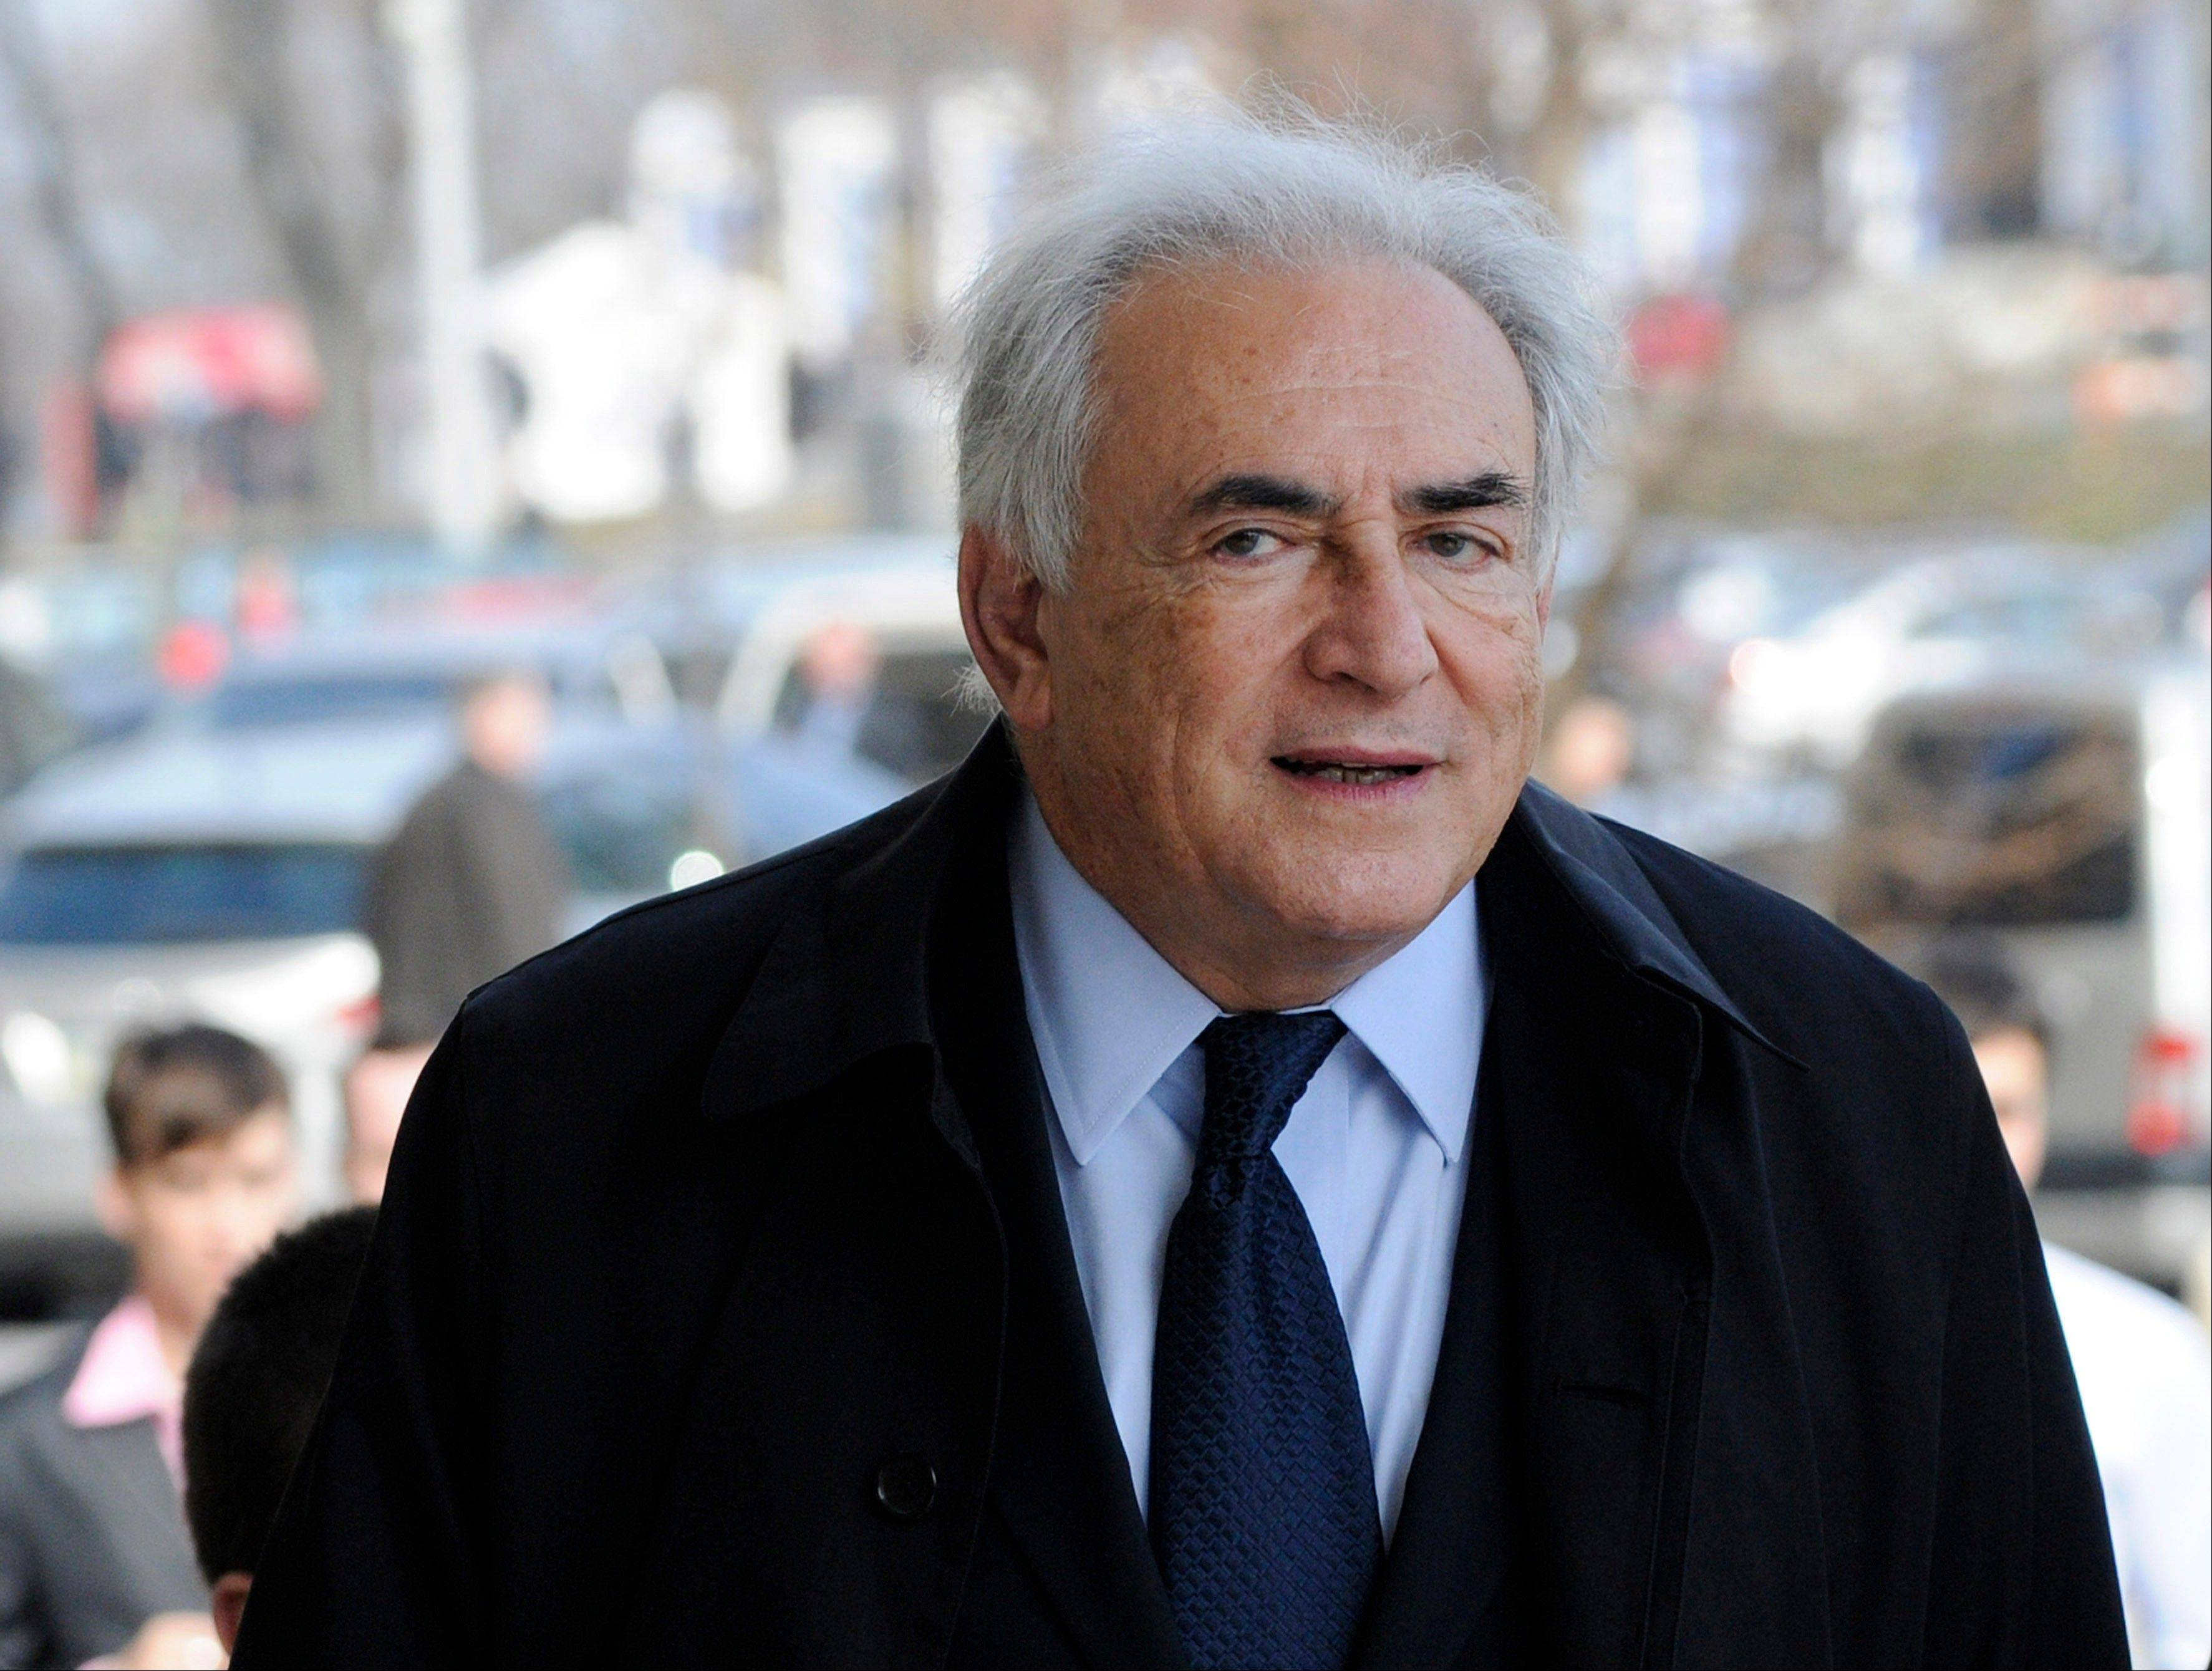 A person familiar with the case says former International Monetary Fund leader, Dominique Strauss-Kahn and a New York City hotel maid who accused him of trying to rape her have reached an agreement to settle her lawsuit. The deal would end a legal saga that forced Strauss-Kahn's resignation as head of the IMF and ended his French presidential ambitions in 2011.